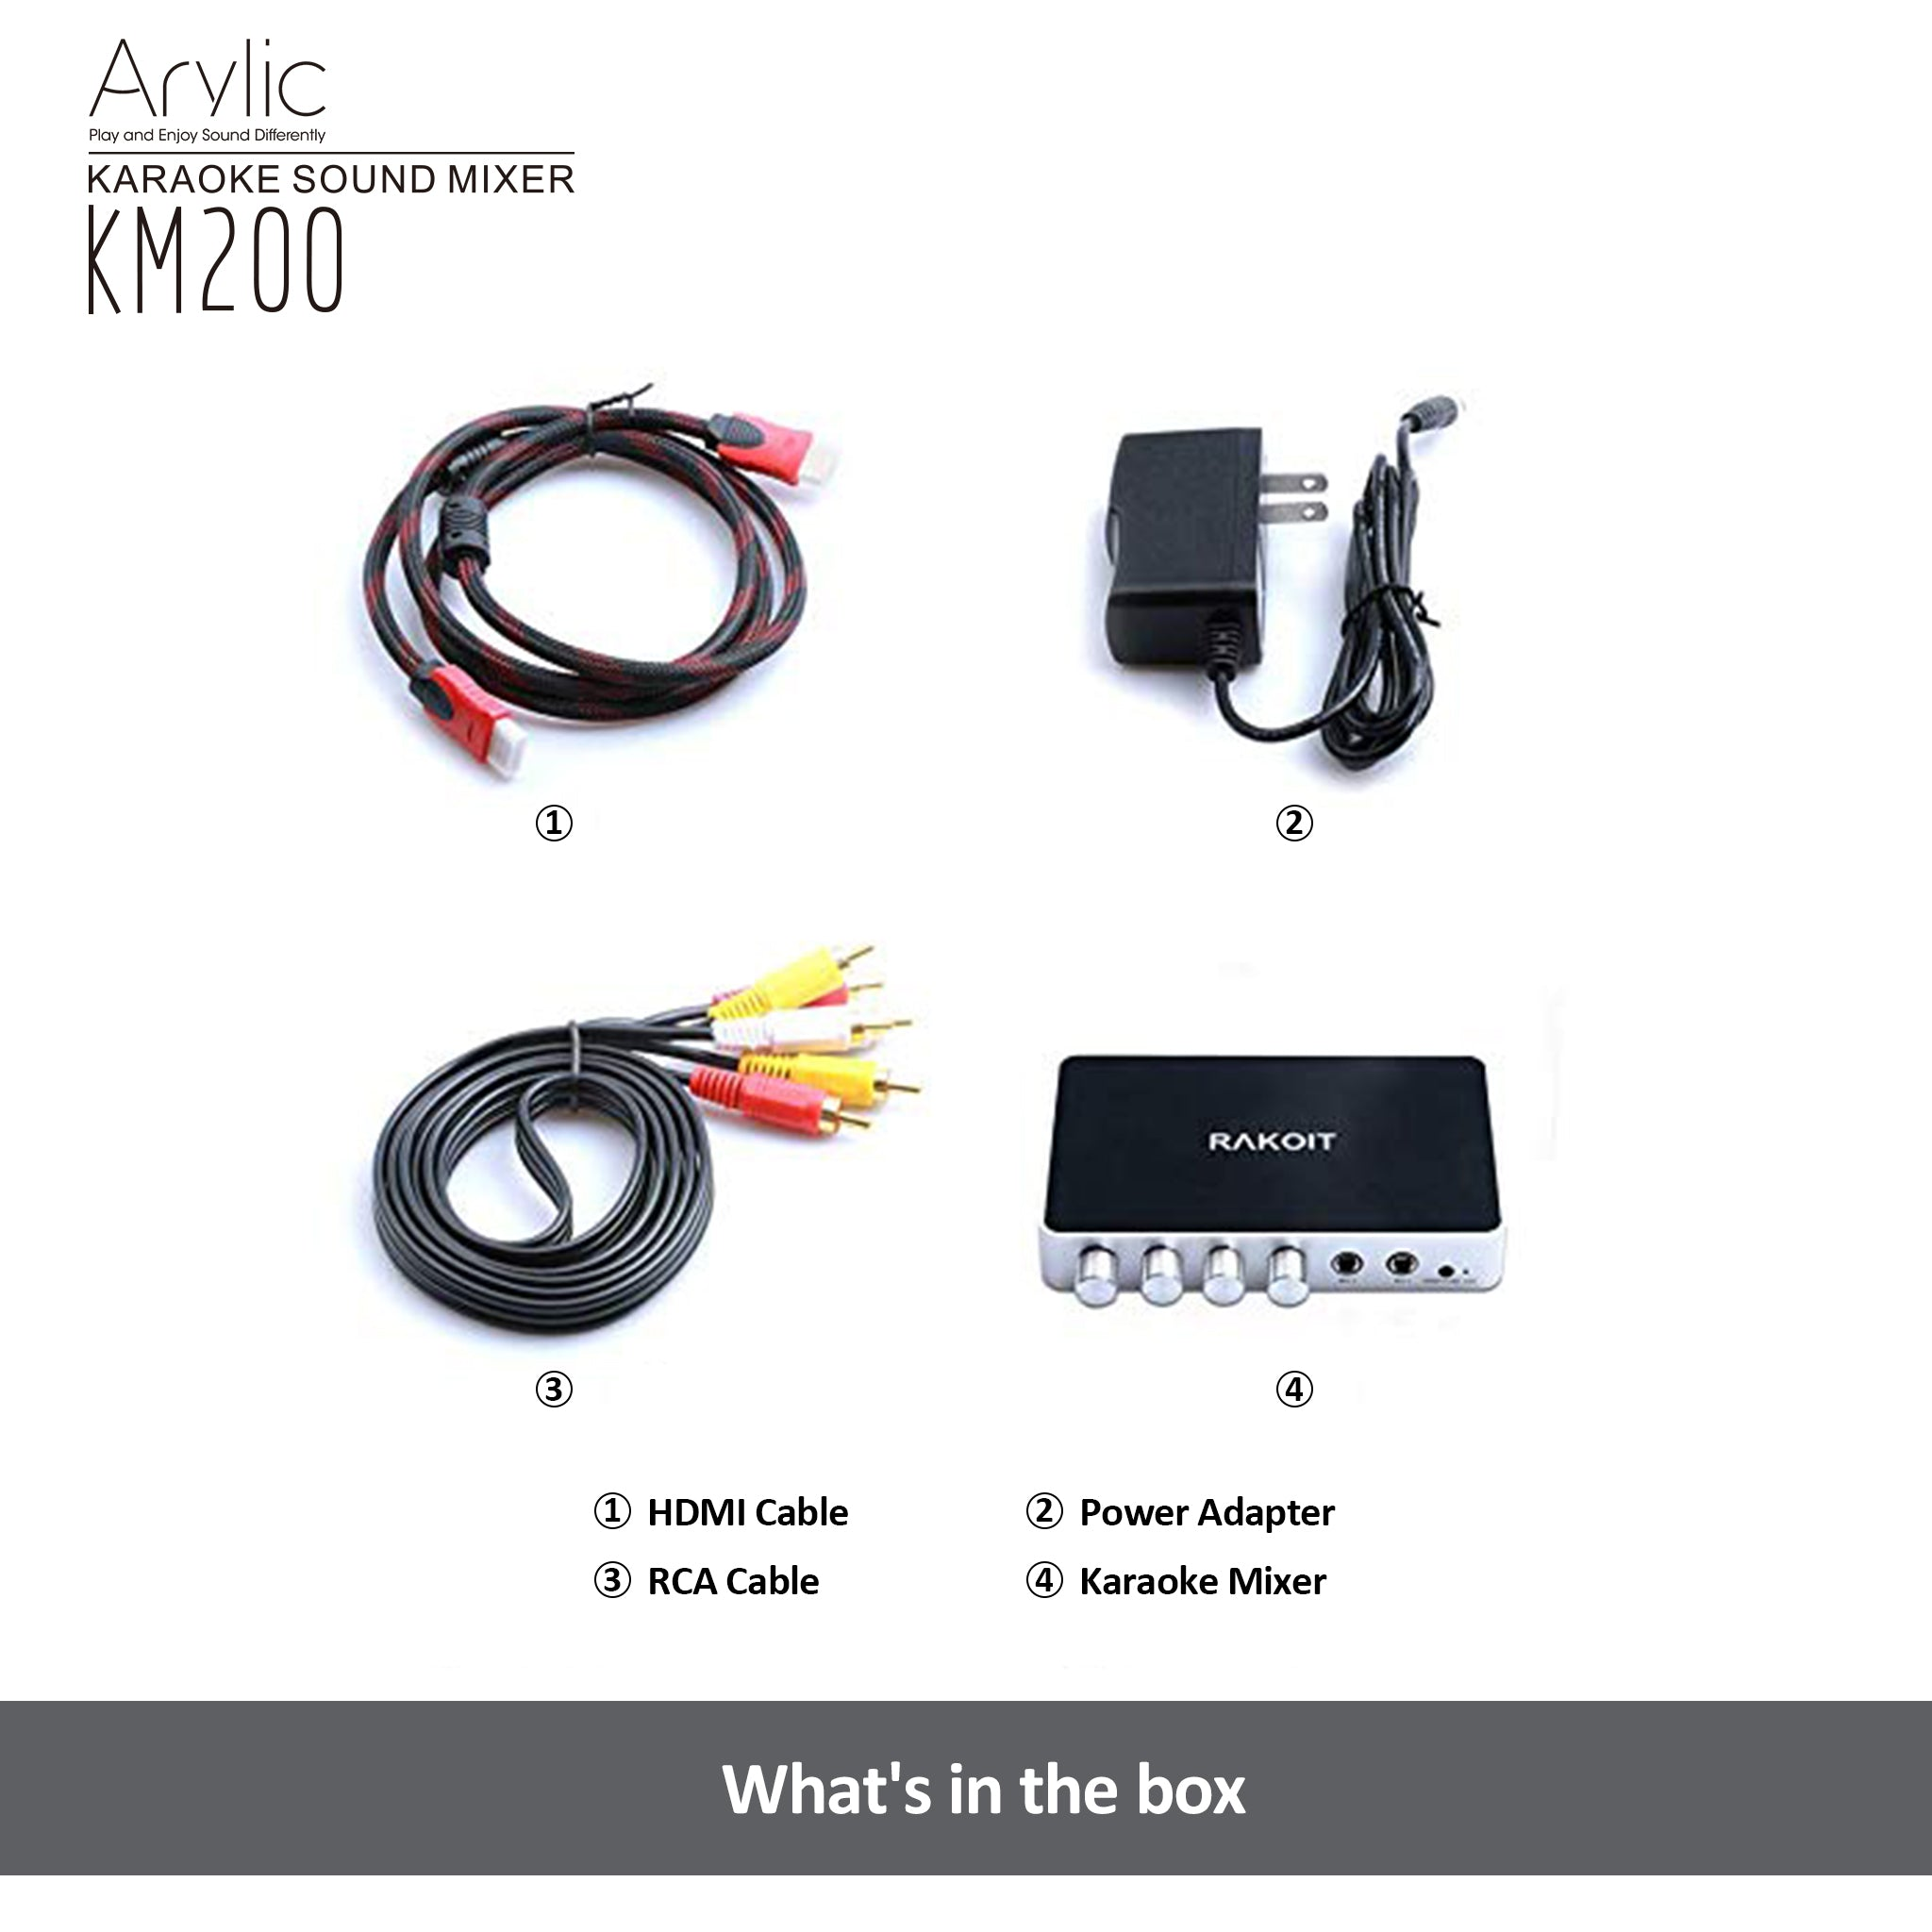 arylic hdmi karaoke mixer accessories